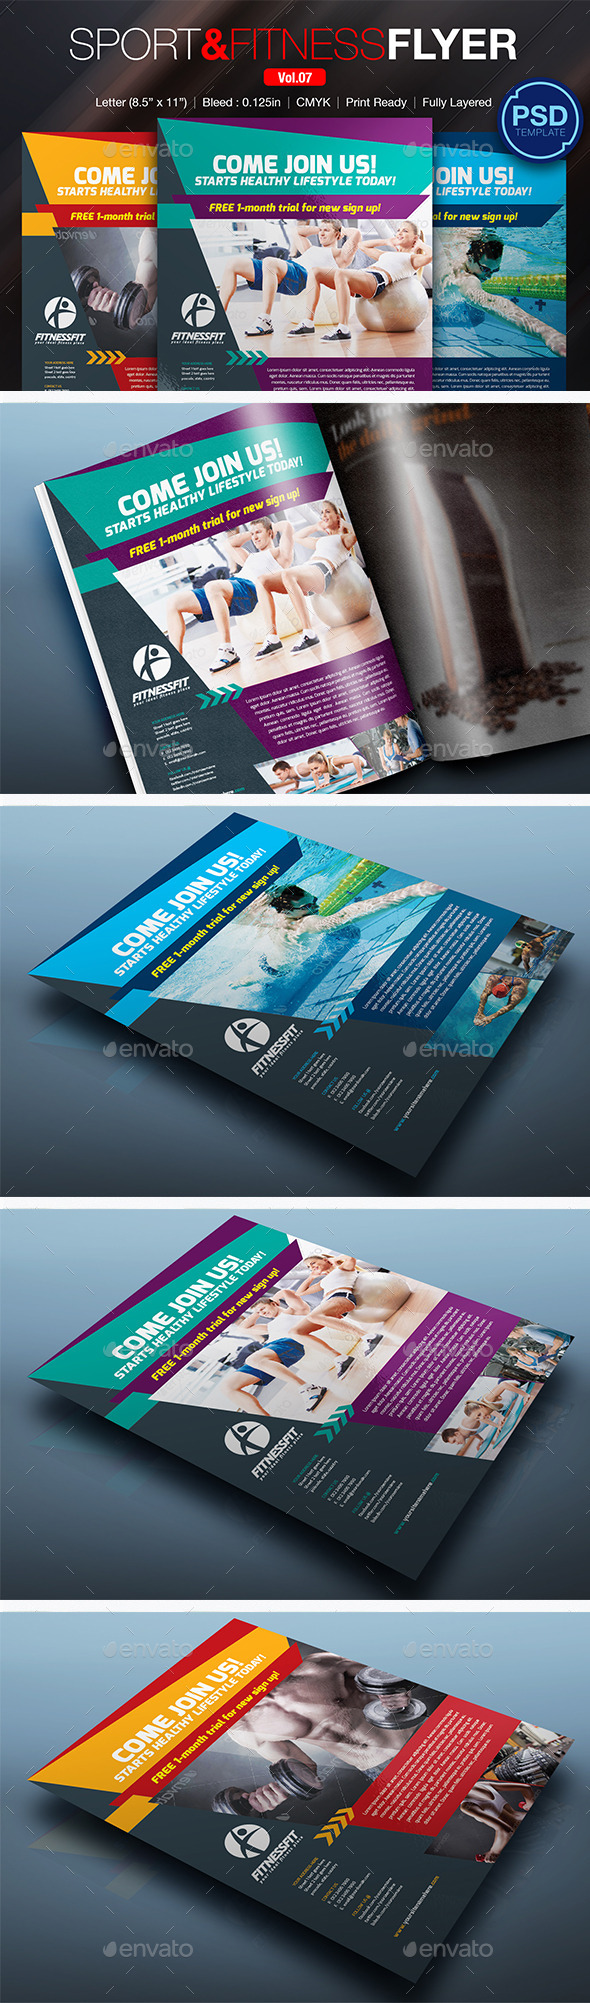 GraphicRiver Sport & Fitness Flyer Vol.07 11038108